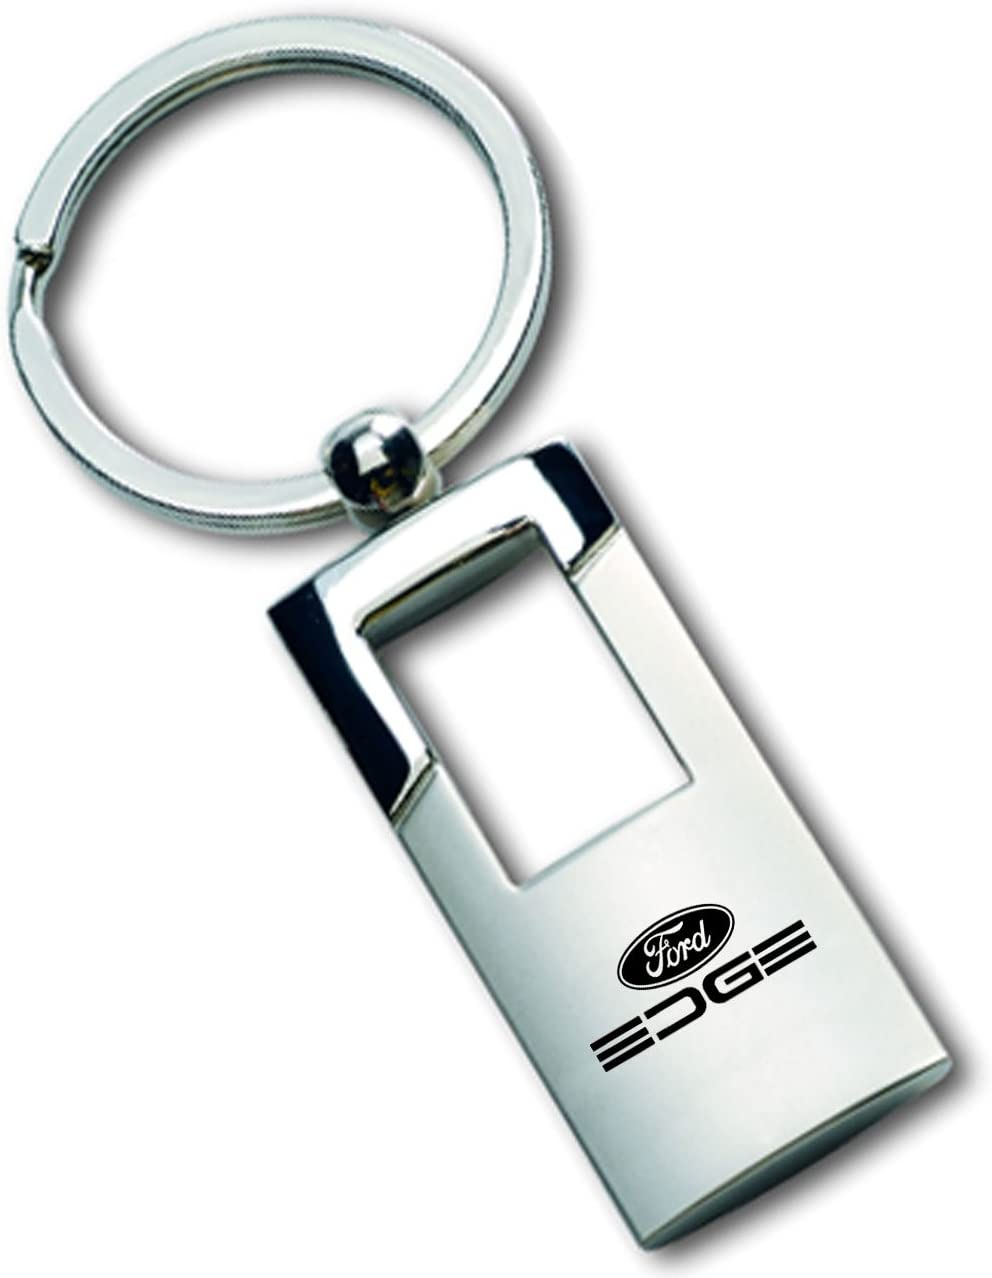 Gregs Automotive Compatible with Edge Ford Chrome and Brushed Metal Key Chain Ring Fob with Racing Decal